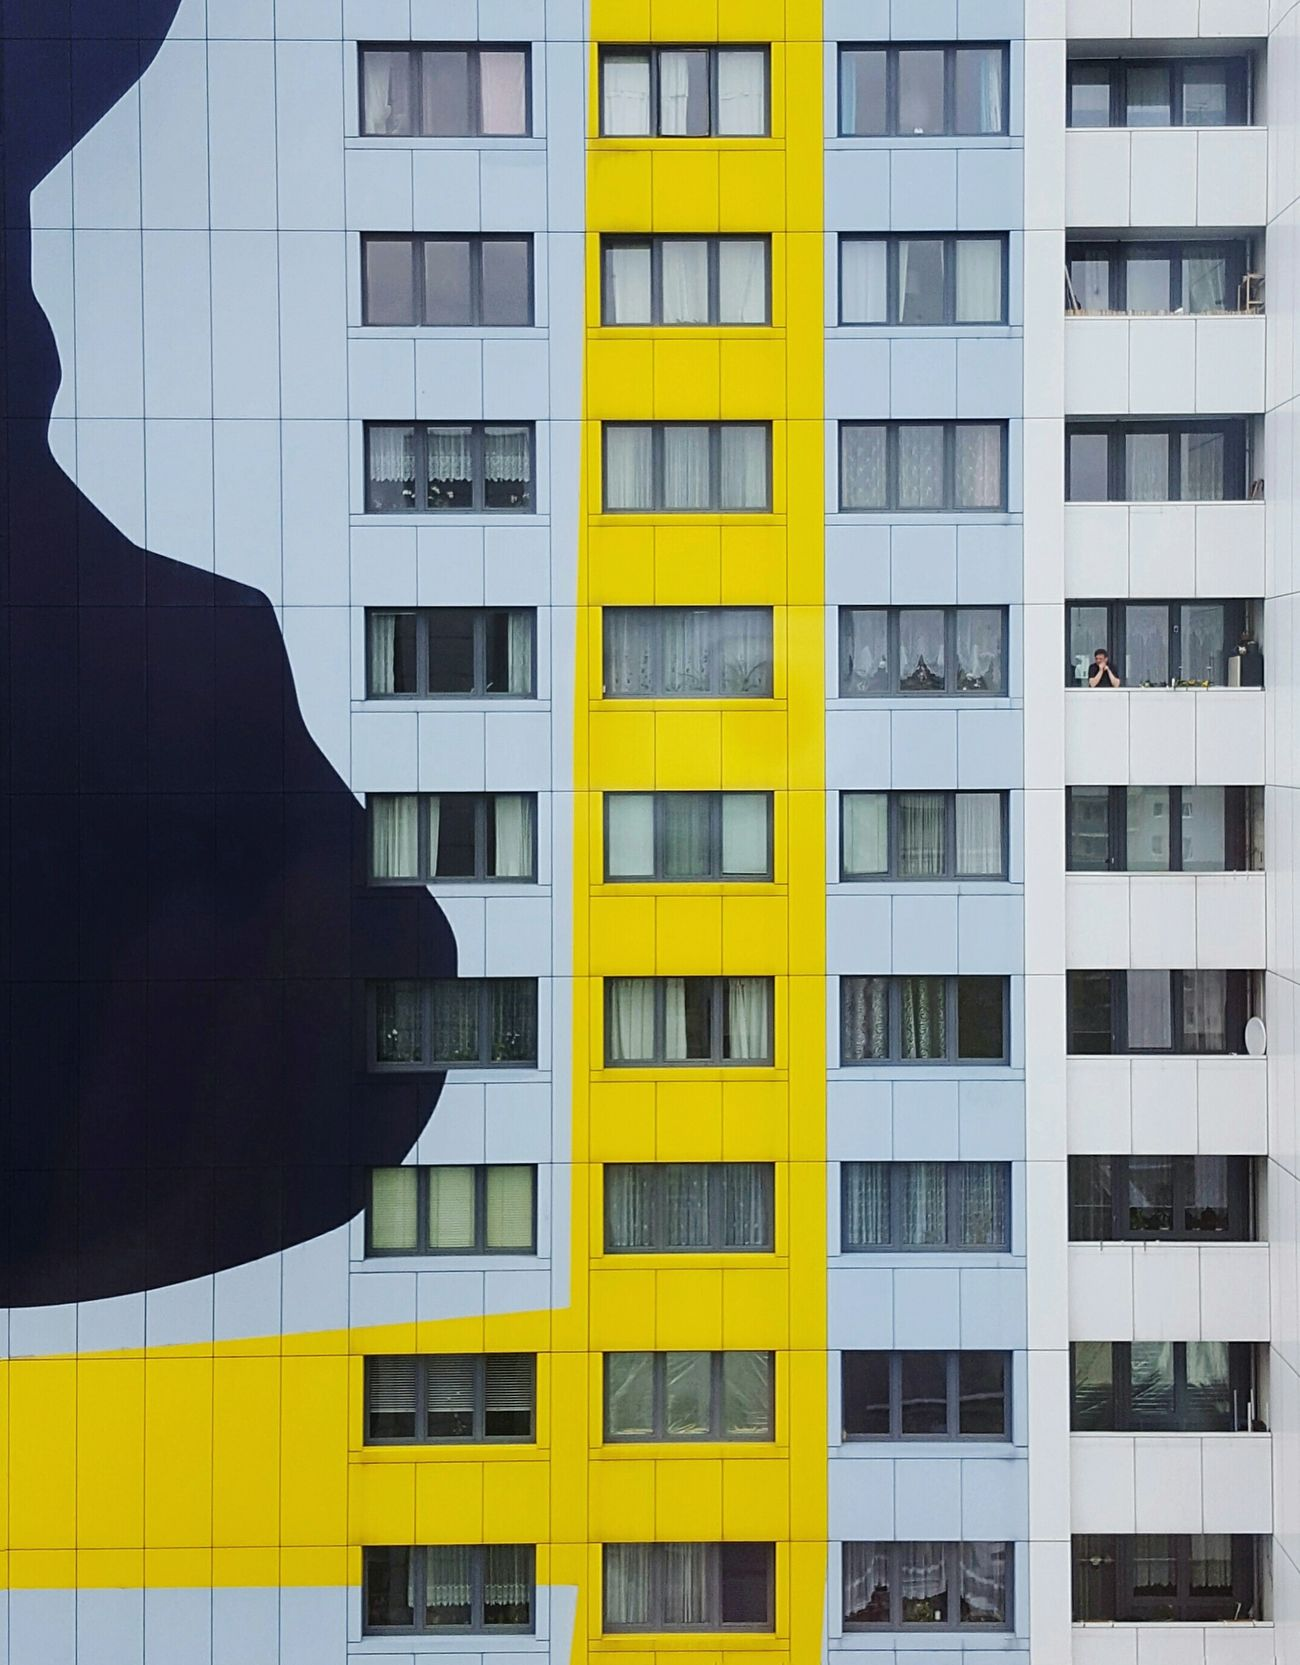 alone among many TCPM One Man Only Residential Building Residensity Hochhaus Plattenbau Plattenbauromantik Bonjour Tristesse Loneliness Architecture Building Exterior City Life Apartment Minimalist Lines And Patterns The Week On EyeEem People And Places Urban Photography Urban Exploration Berlin Photography Berliner Ansichten City Life One Person The Architect - 2017 EyeEm Awards